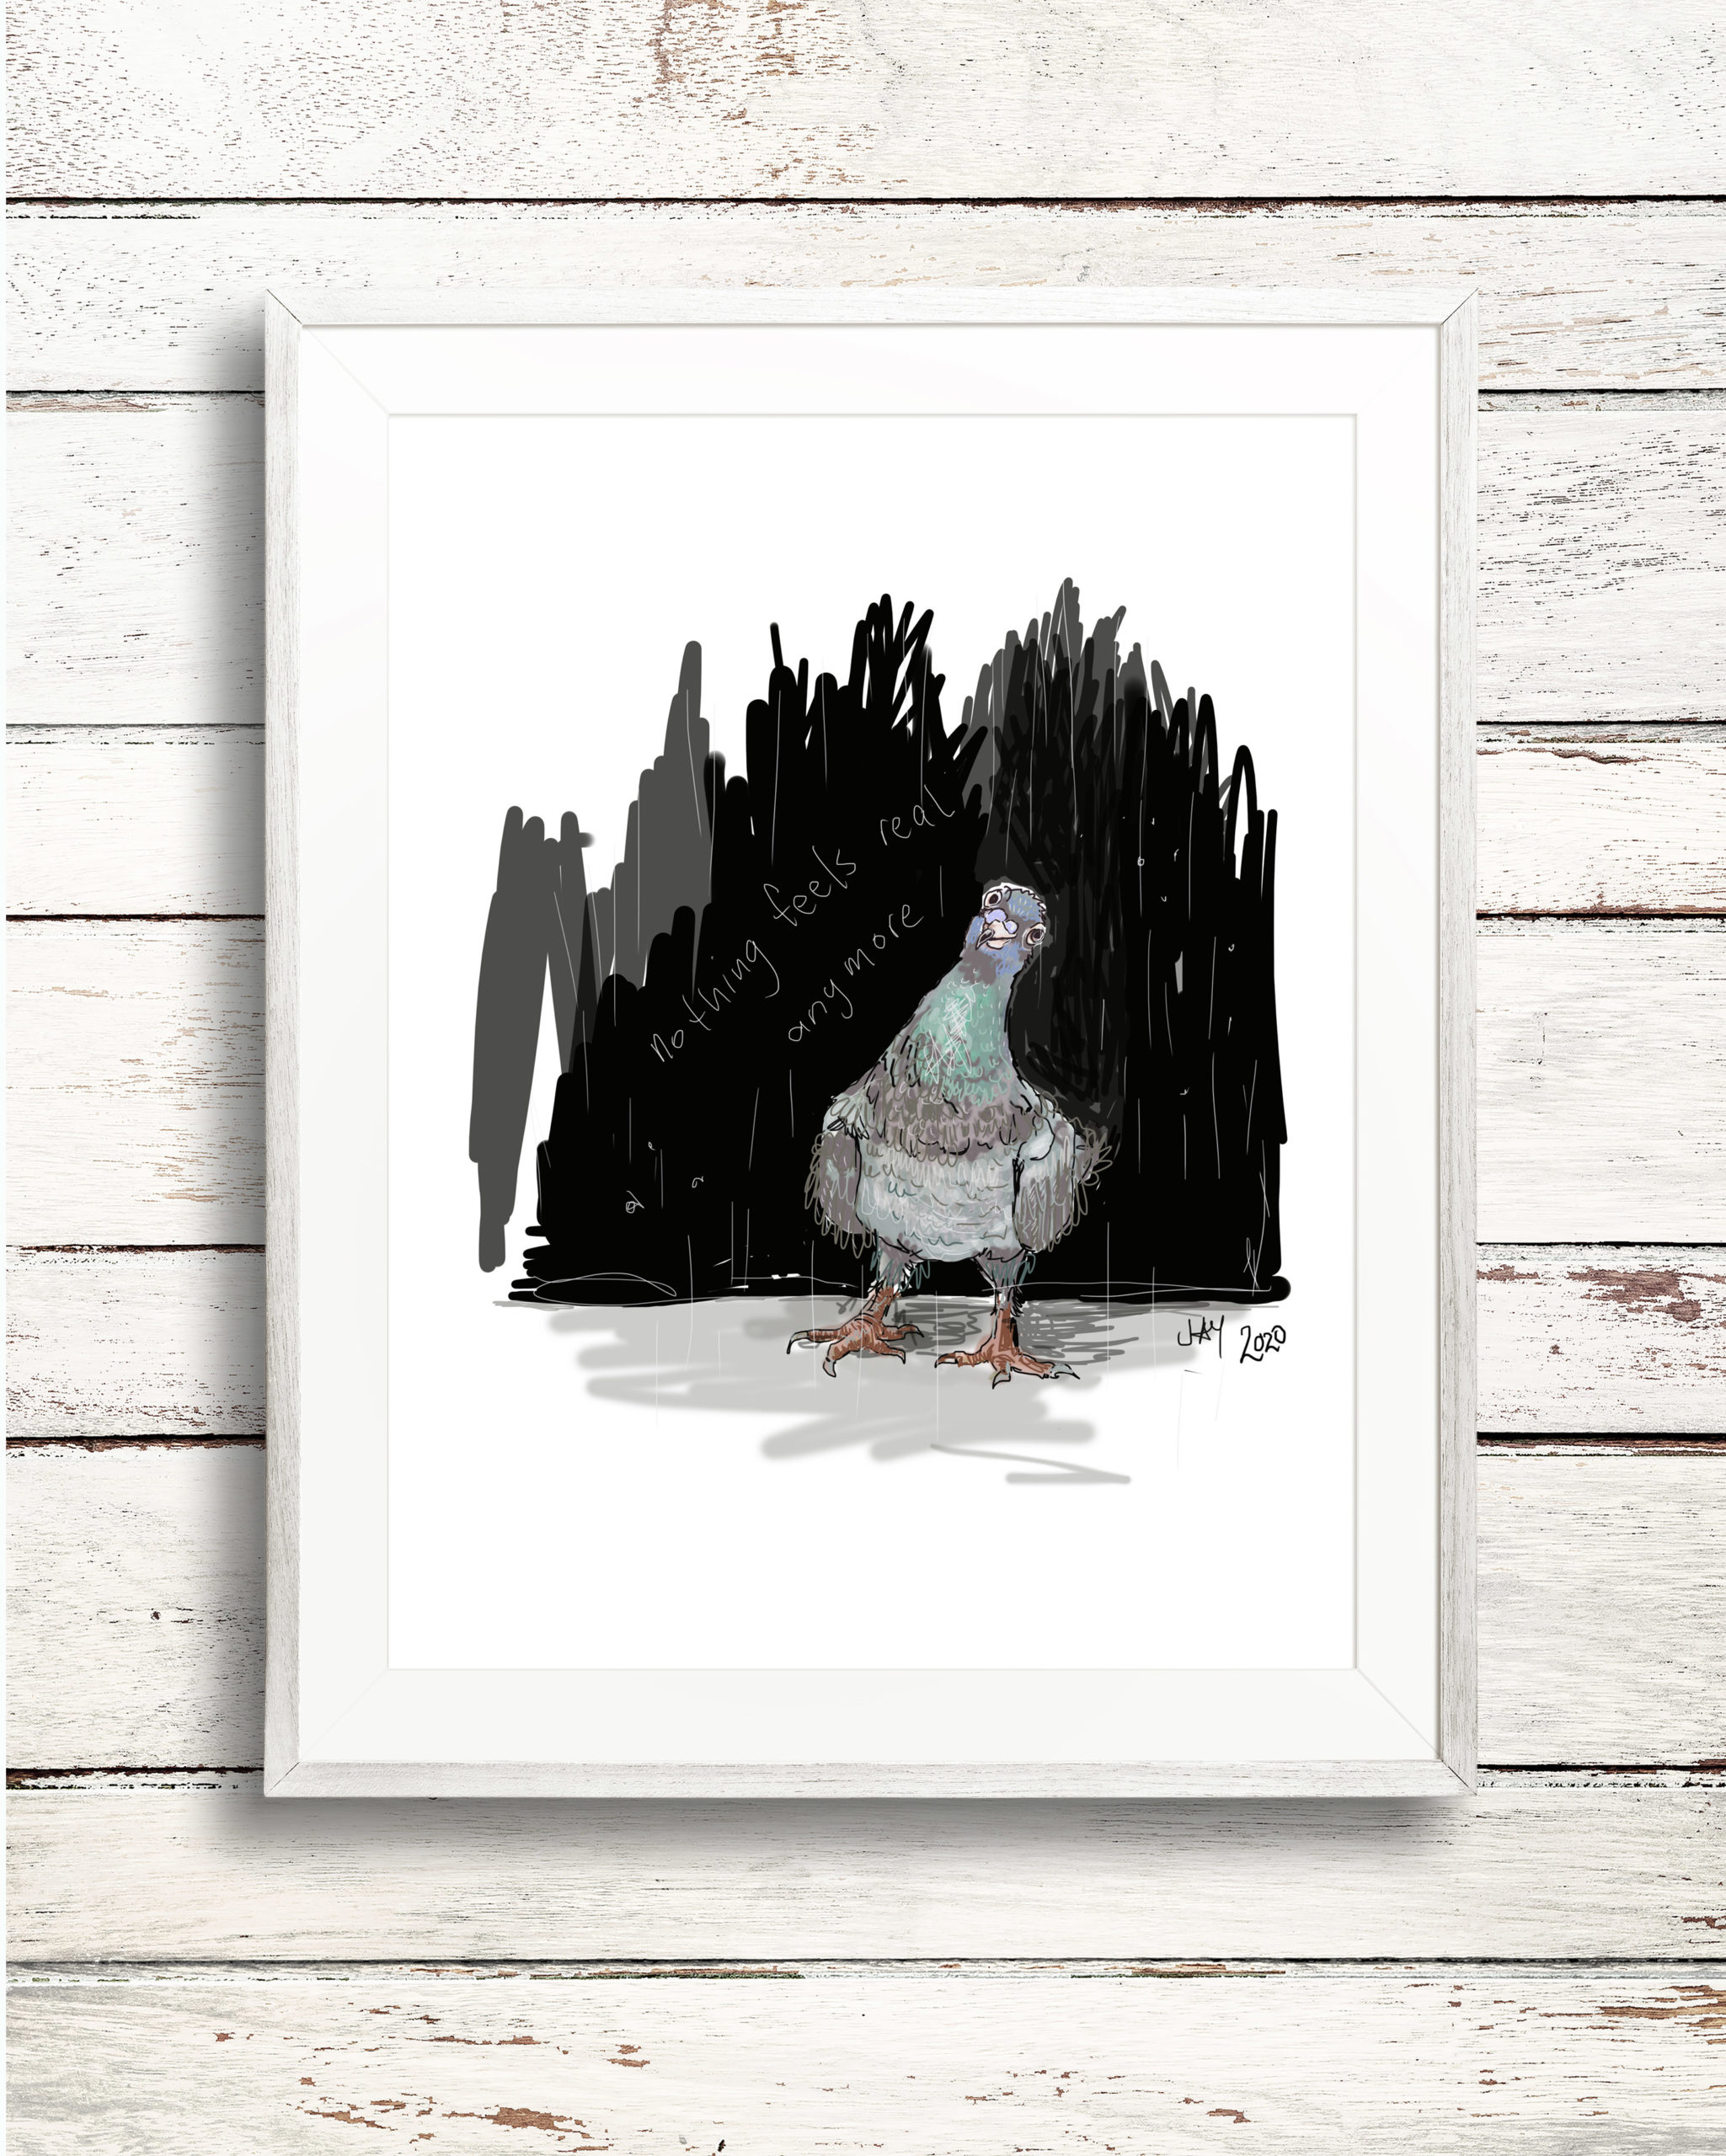 City pigeon in the time of Covid. via @chooicenz